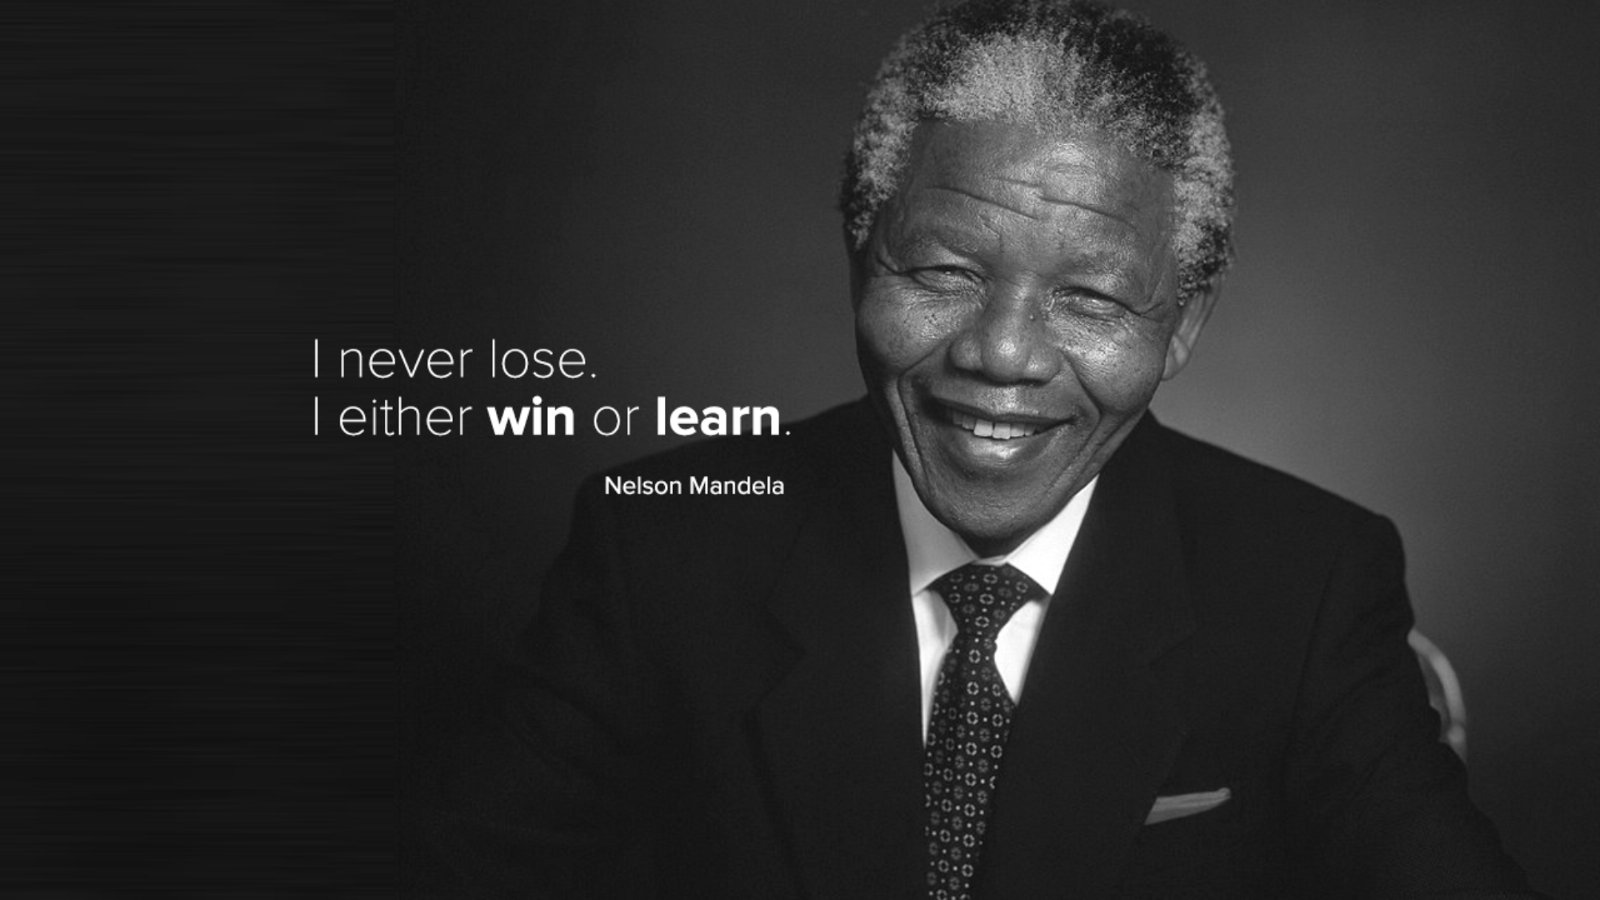 how to win or learn like nelson mandela  rather than simply repeating mistakes